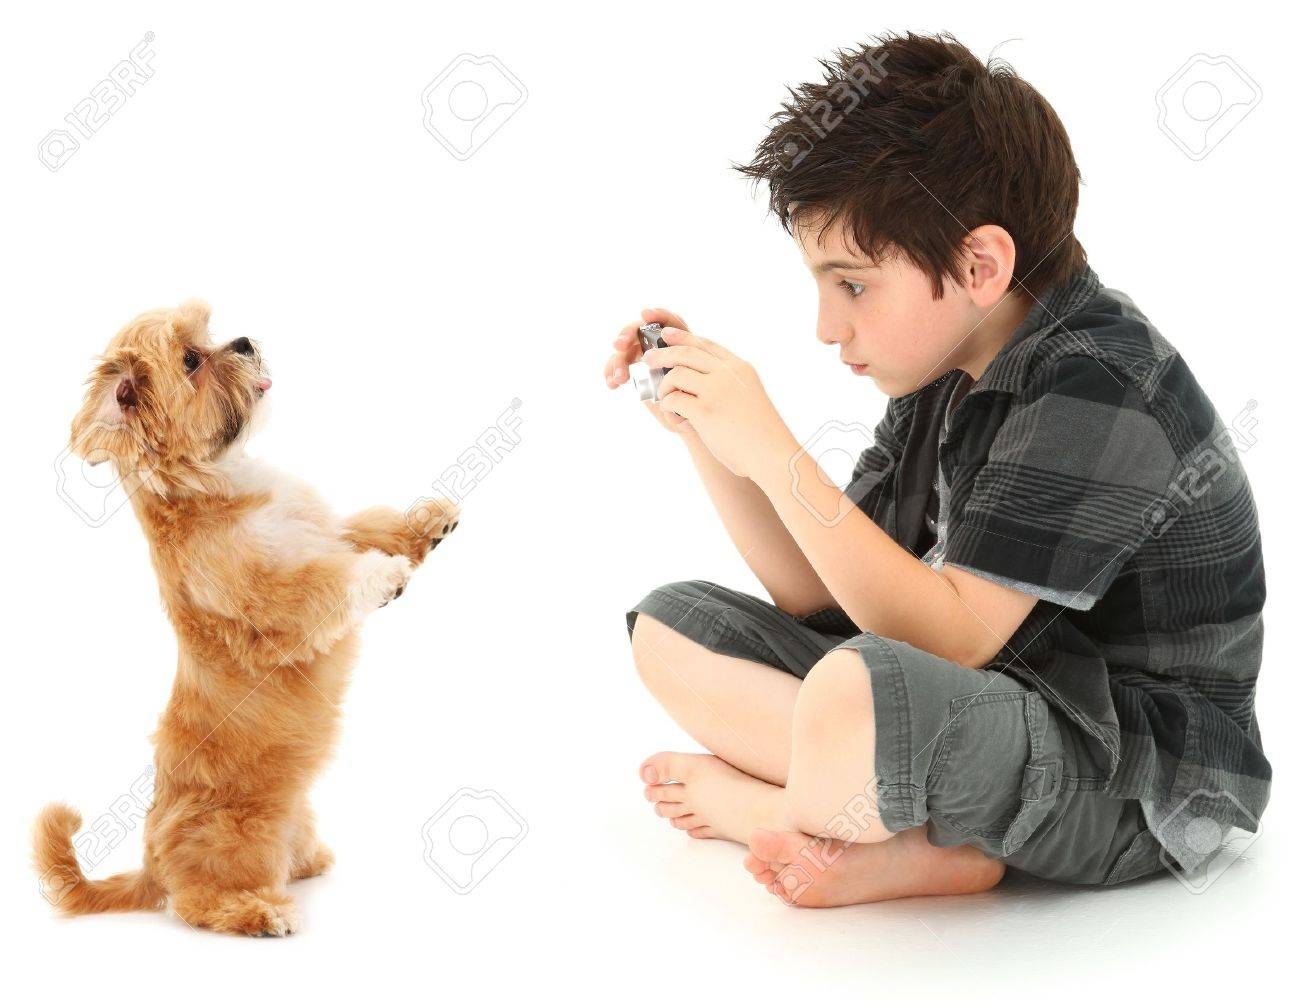 Adorable 8 year old boy shooting photos of his dog with digital camera over white background. Stock Photo - 9739090